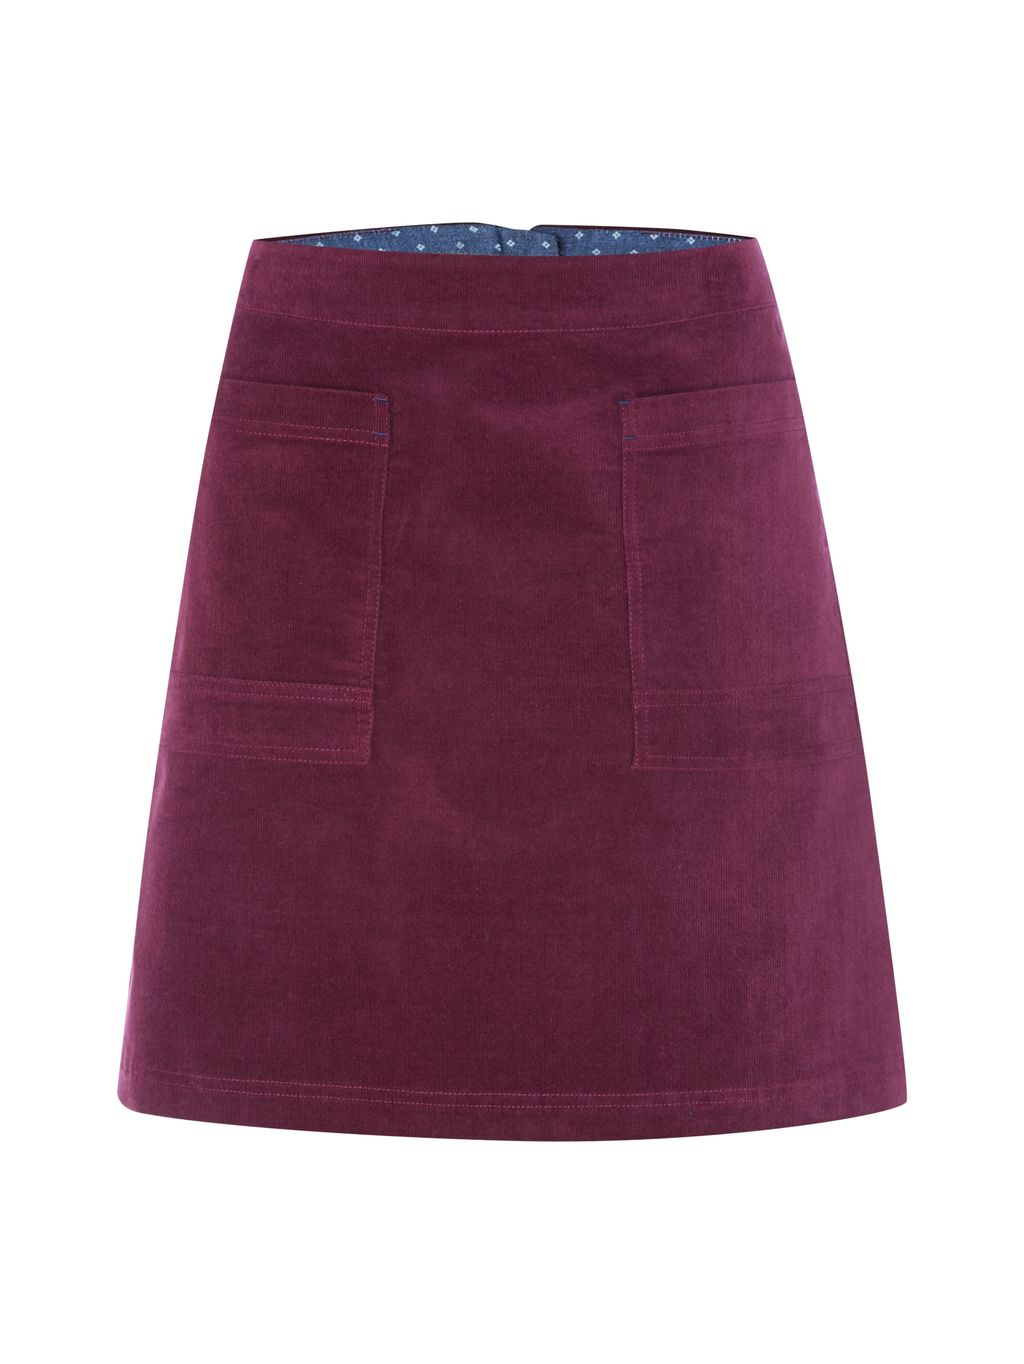 Coffee Cord Skirt, Purple - length: mid thigh; pattern: plain; fit: loose/voluminous; waist: high rise; predominant colour: magenta; occasions: casual; style: a-line; fibres: cotton - 100%; hip detail: subtle/flattering hip detail; texture group: corduroy; pattern type: fabric; season: a/w 2016; wardrobe: highlight